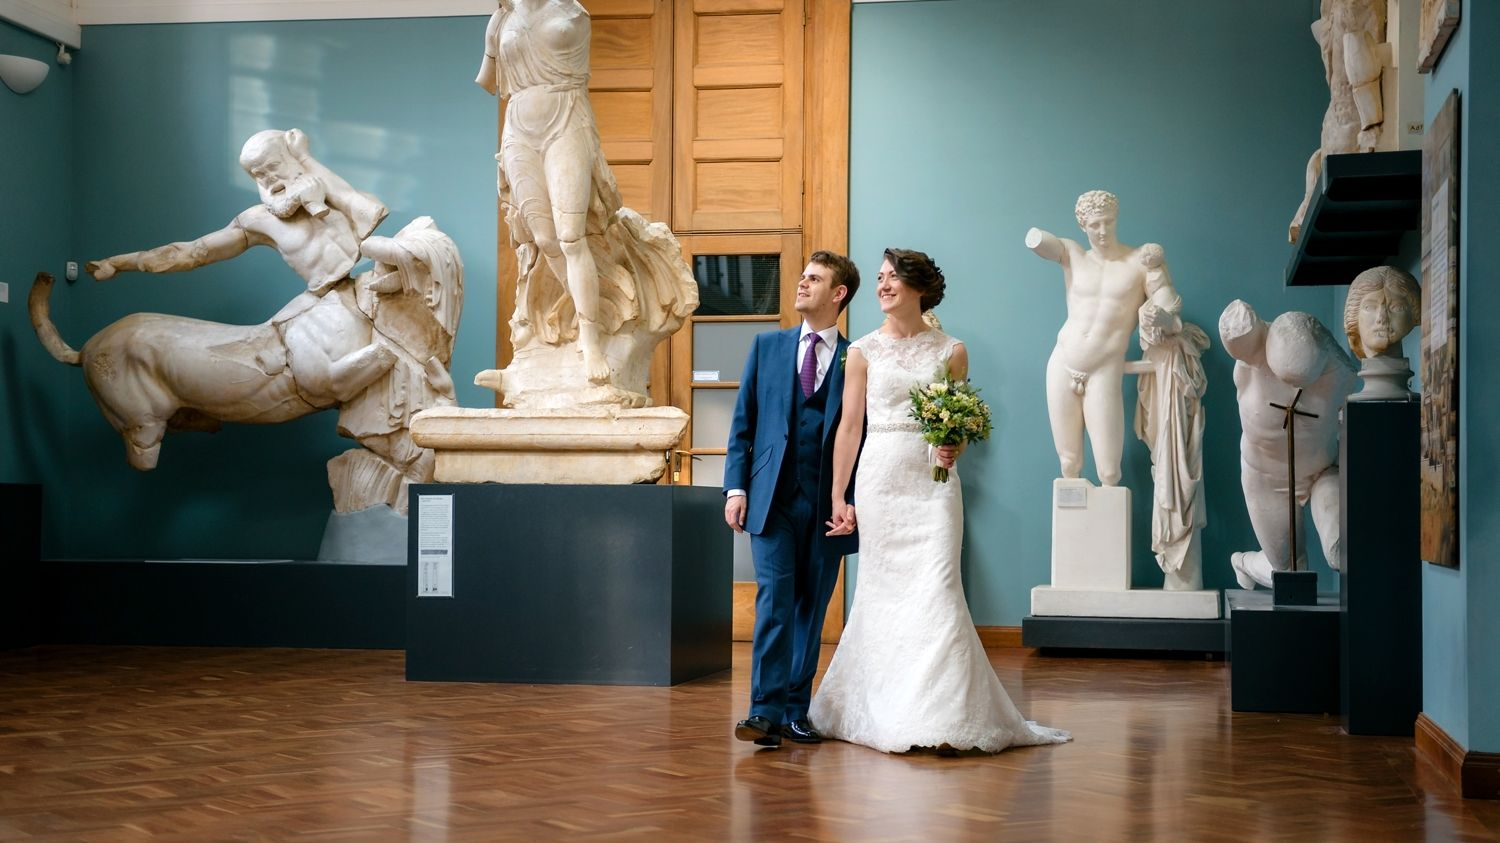 Weddings at The Ashmolean Oxford